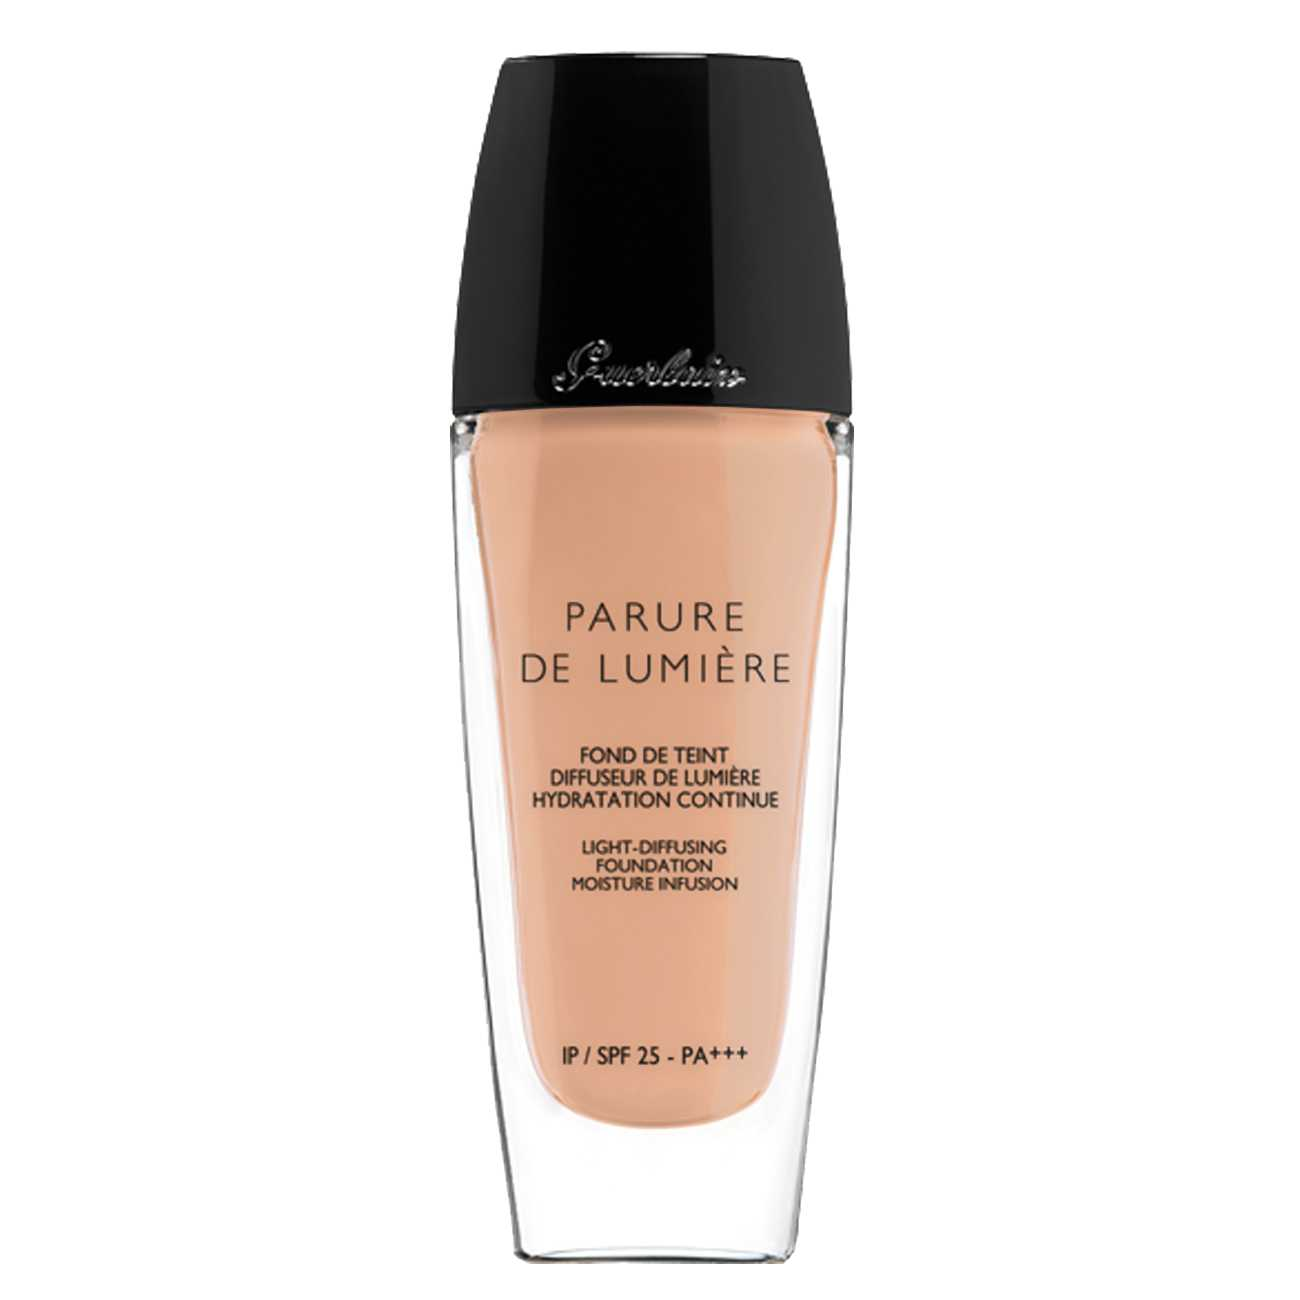 Parure De Lumiere 30 Ml Rose Naturel 13 Guerlain imagine 2021 bestvalue.eu